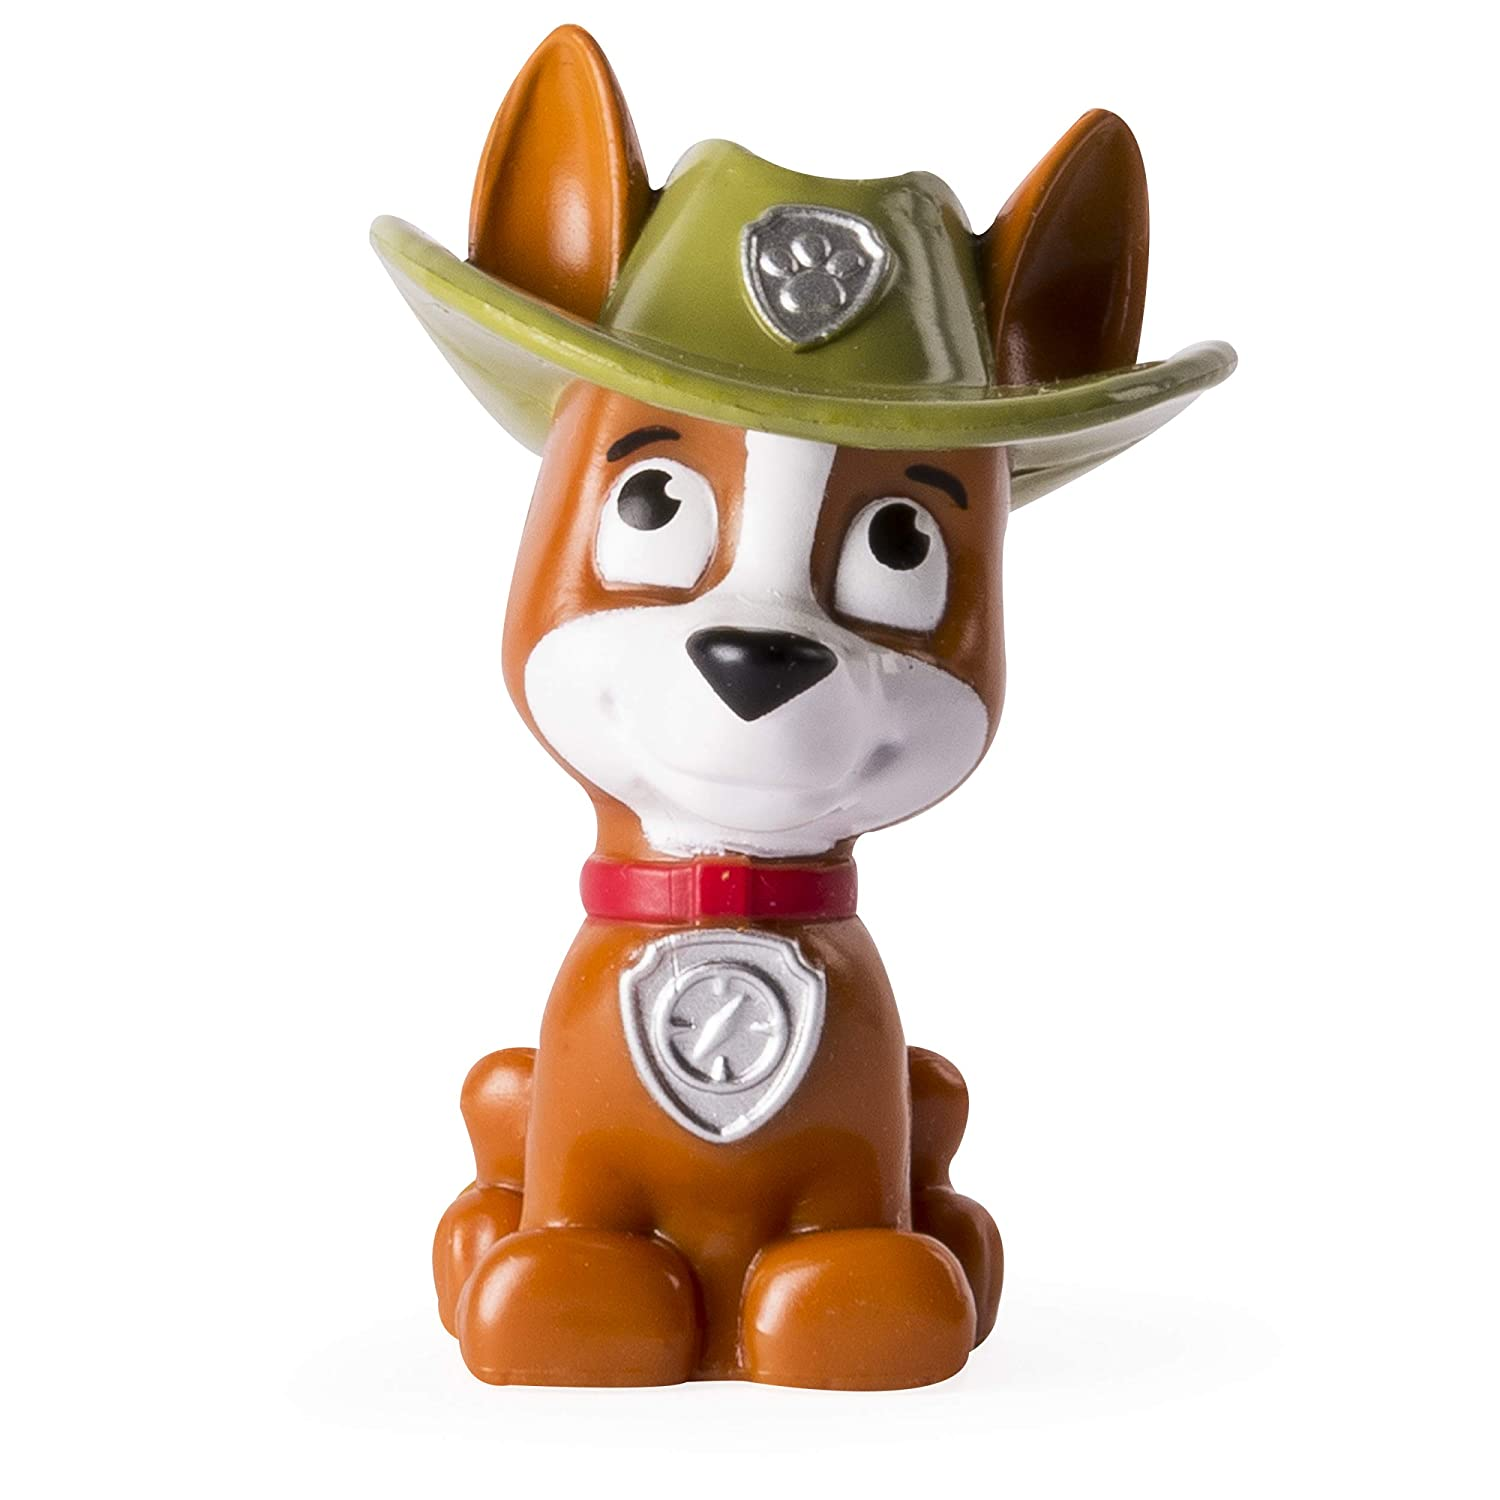 Paw Patrol Mini Figures Tracker Paw Patrol and Spinmaster 20072941